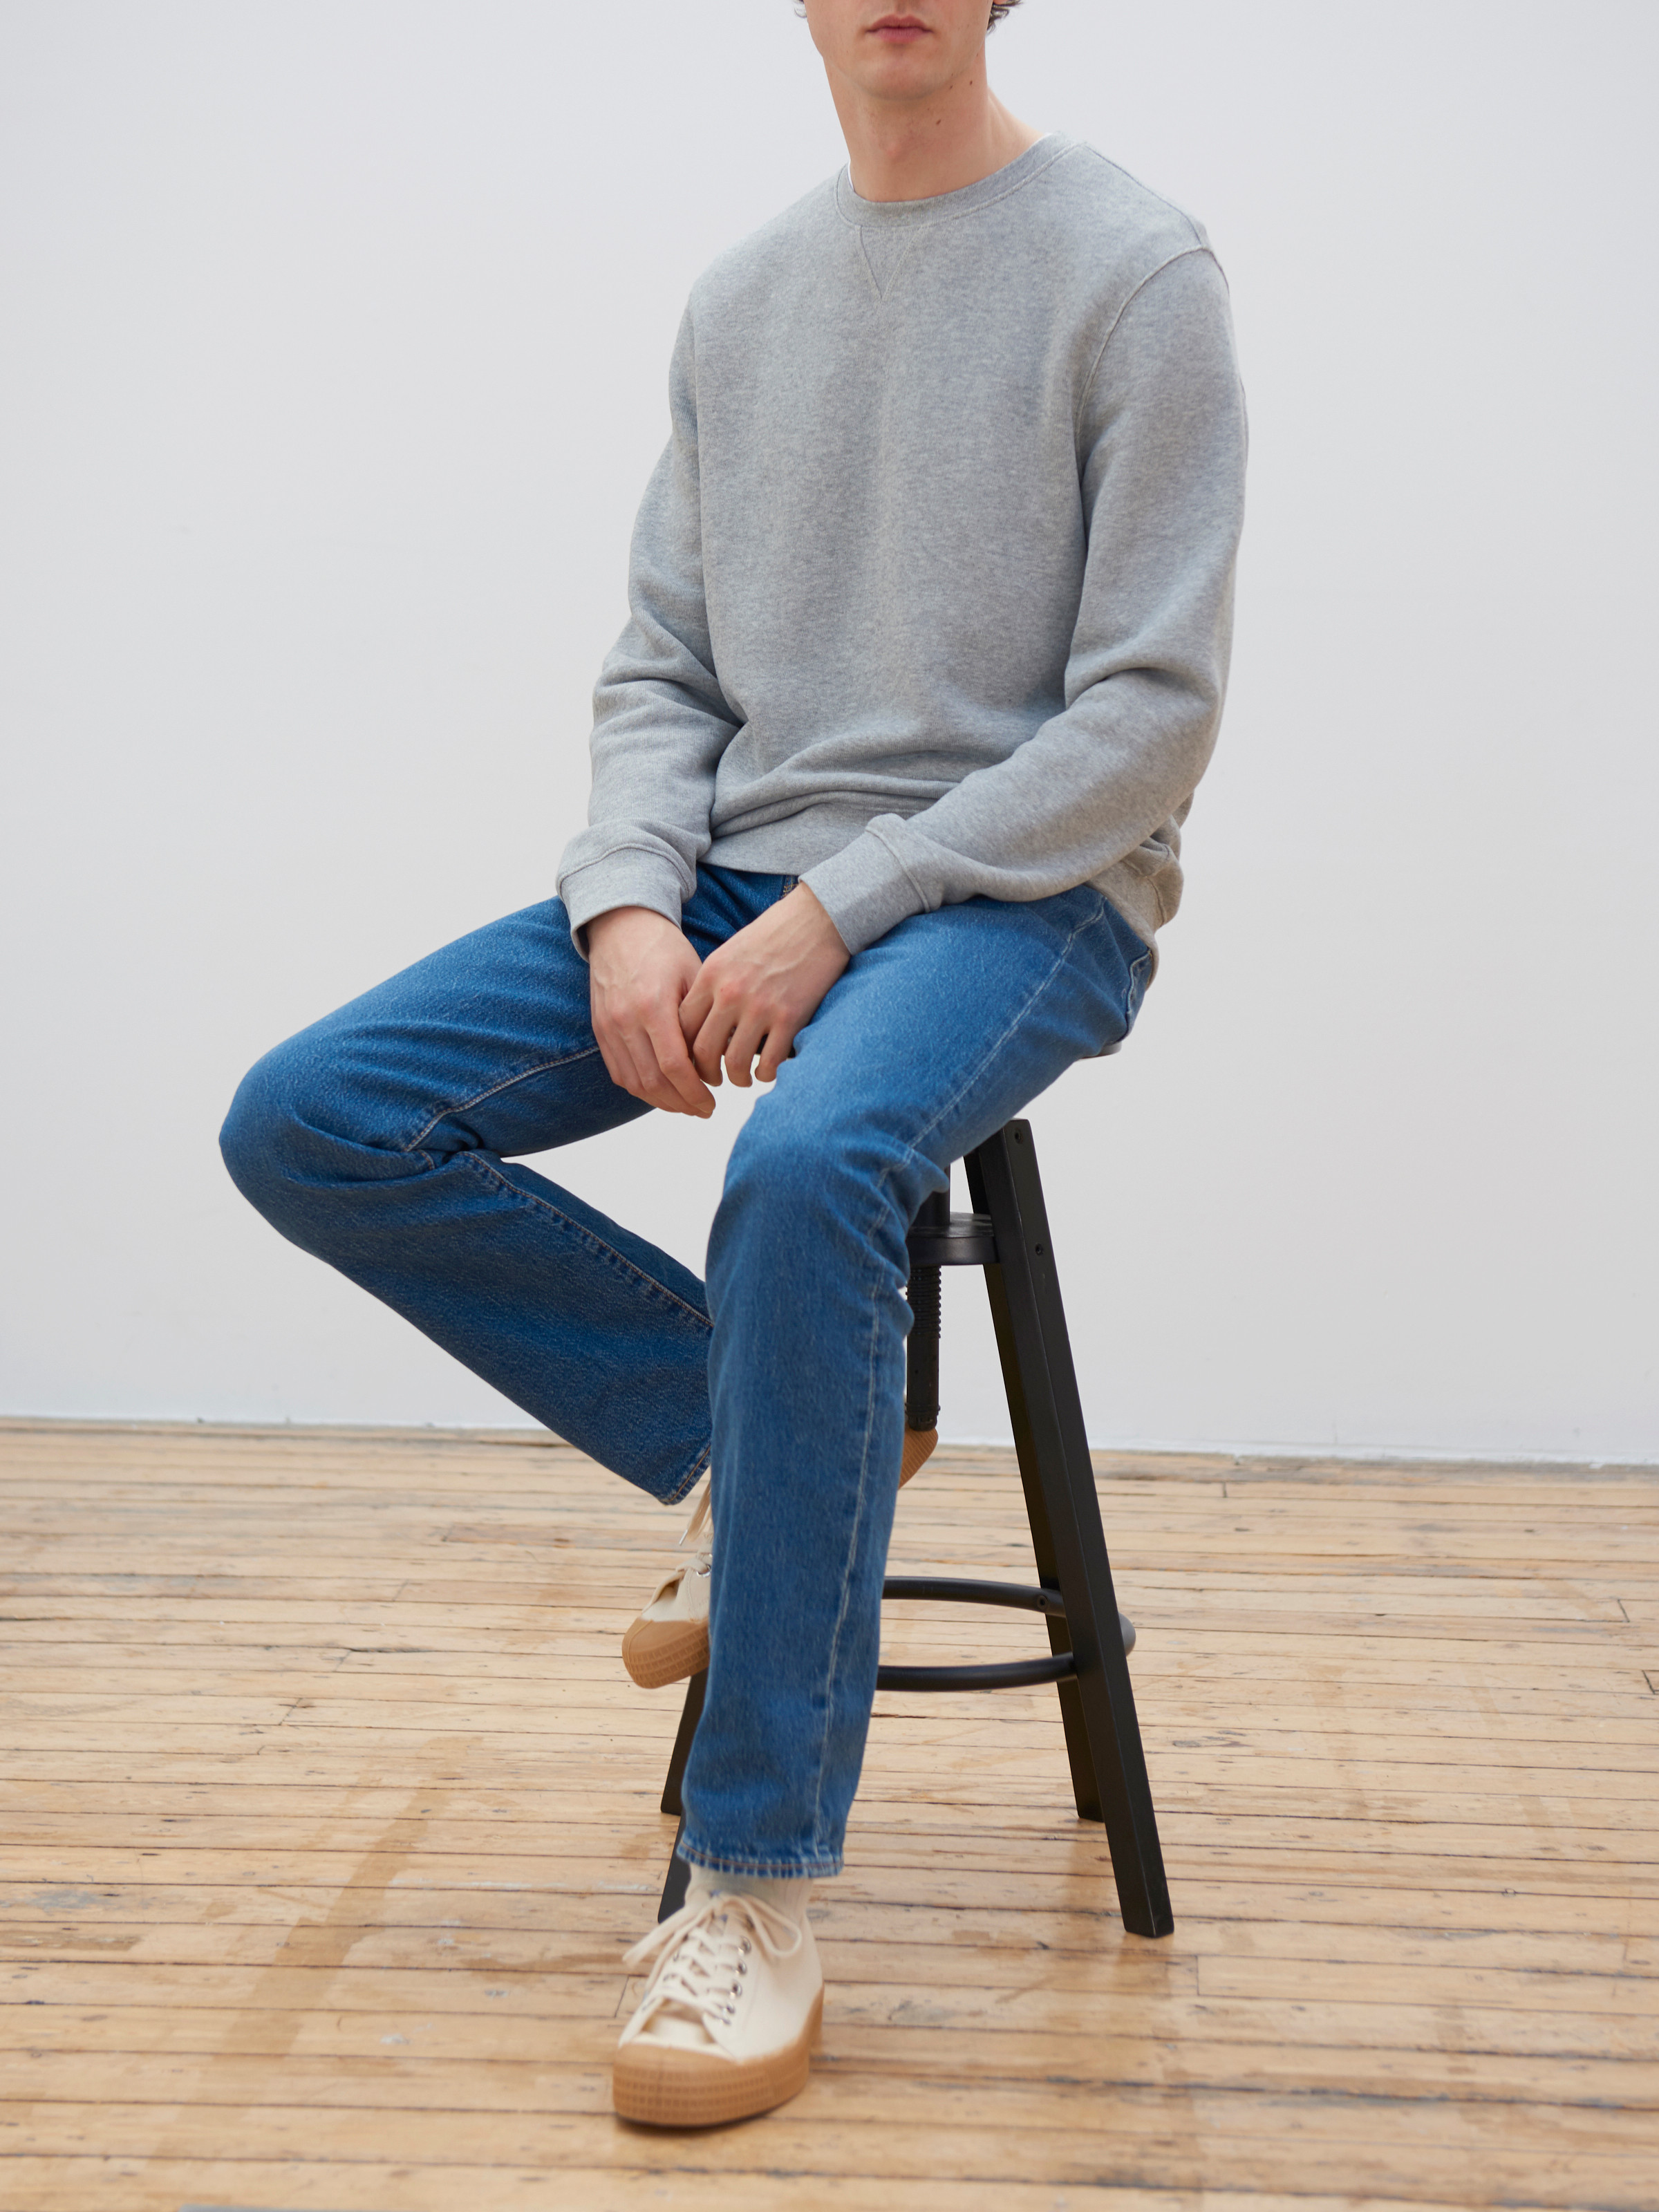 Men's outfit idea for 2021 with grey sweatshirt, mid blue jeans, white trainers. Suitable for spring, summer and autumn.